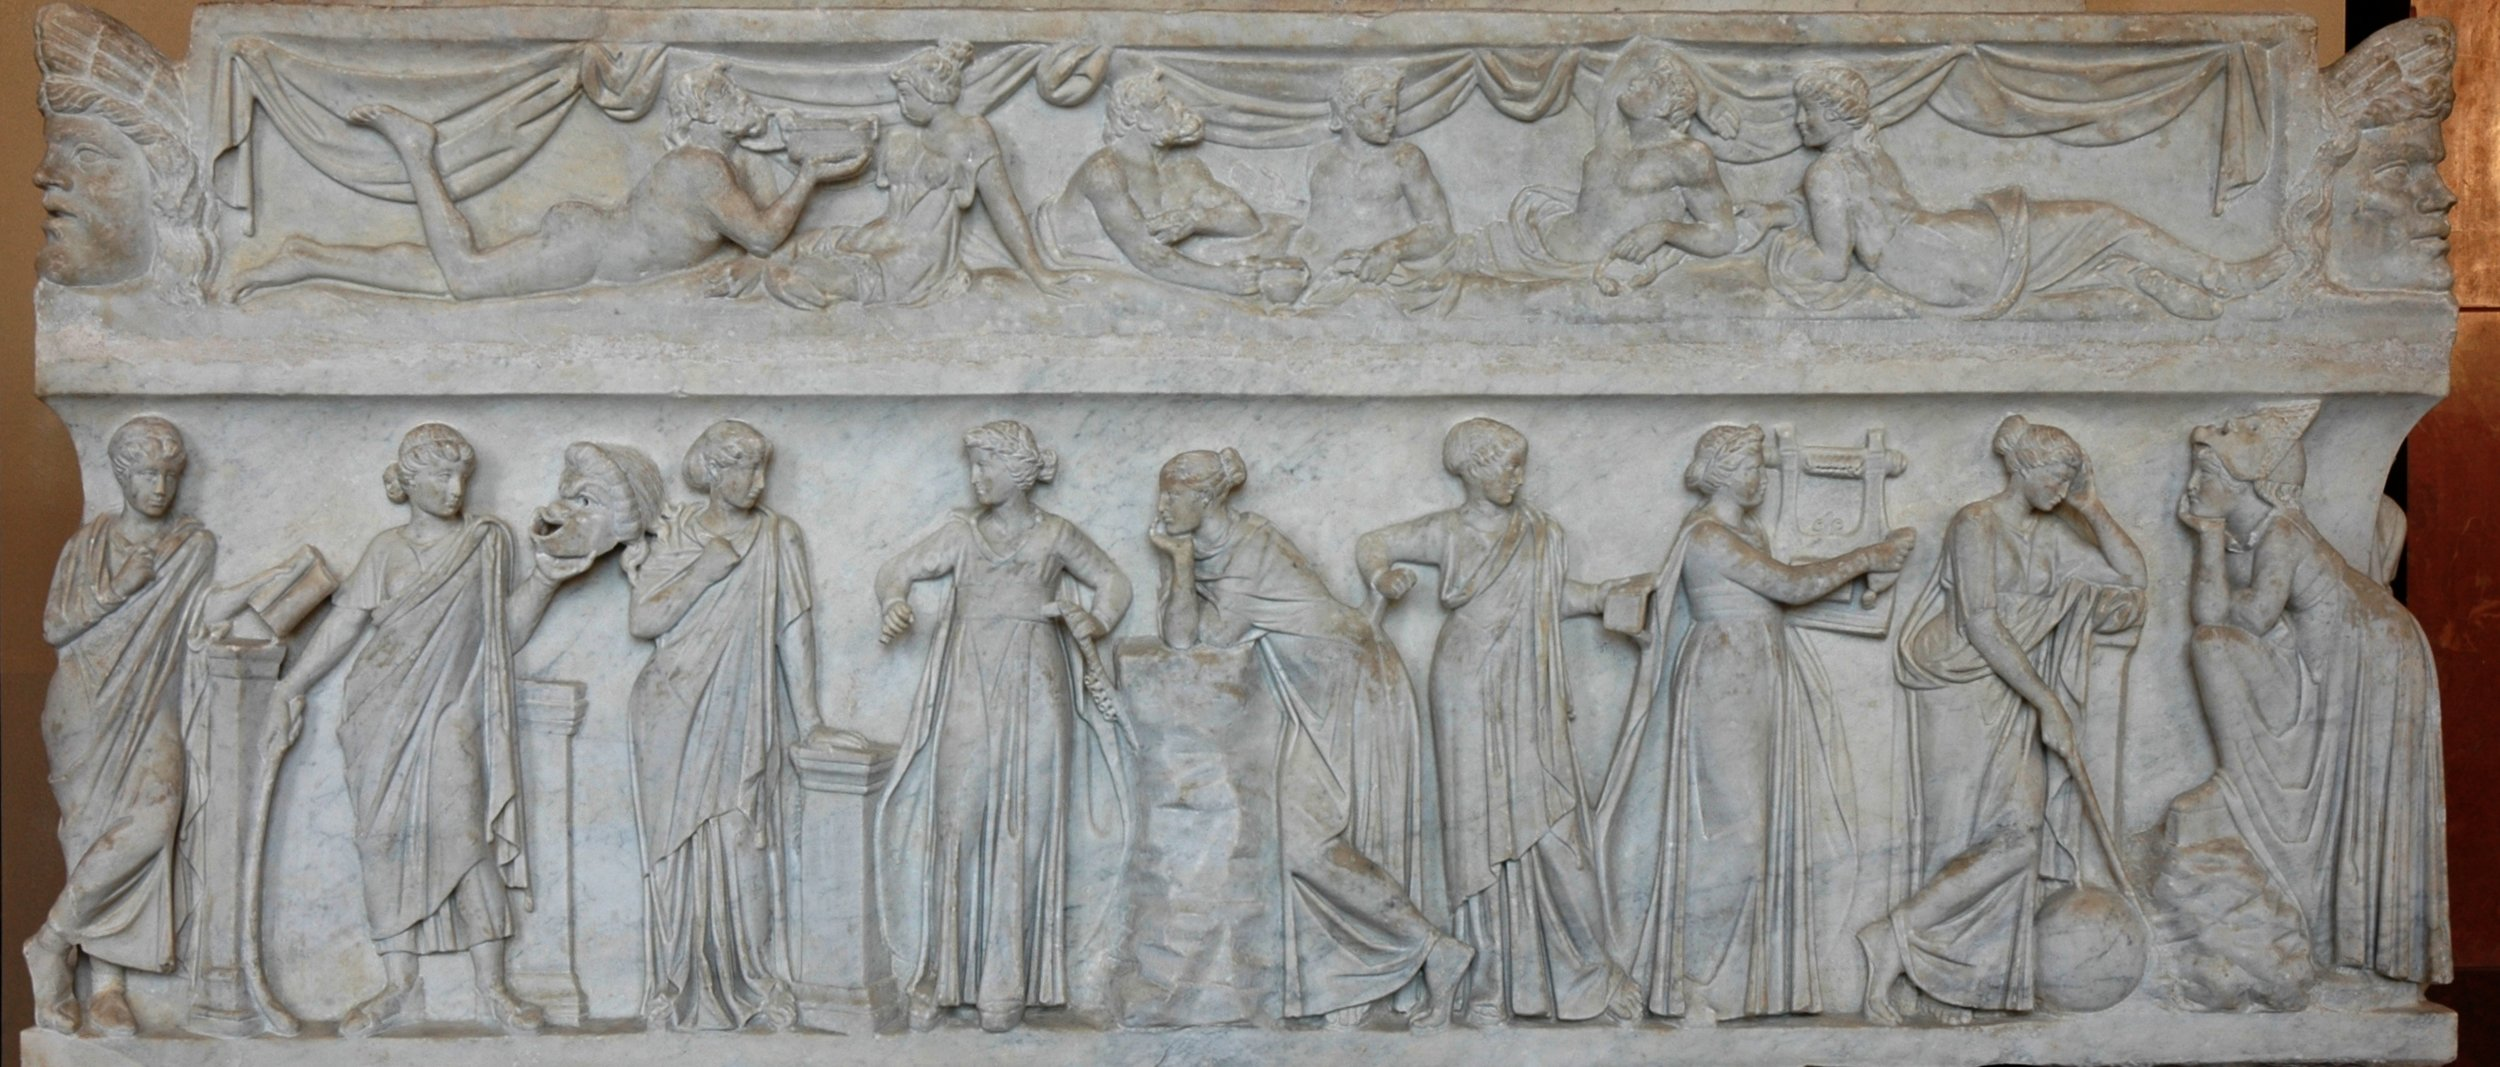 just living that muse life. - The Nine Muses, from a Roman sarcophagus, courtesy of the Louvre